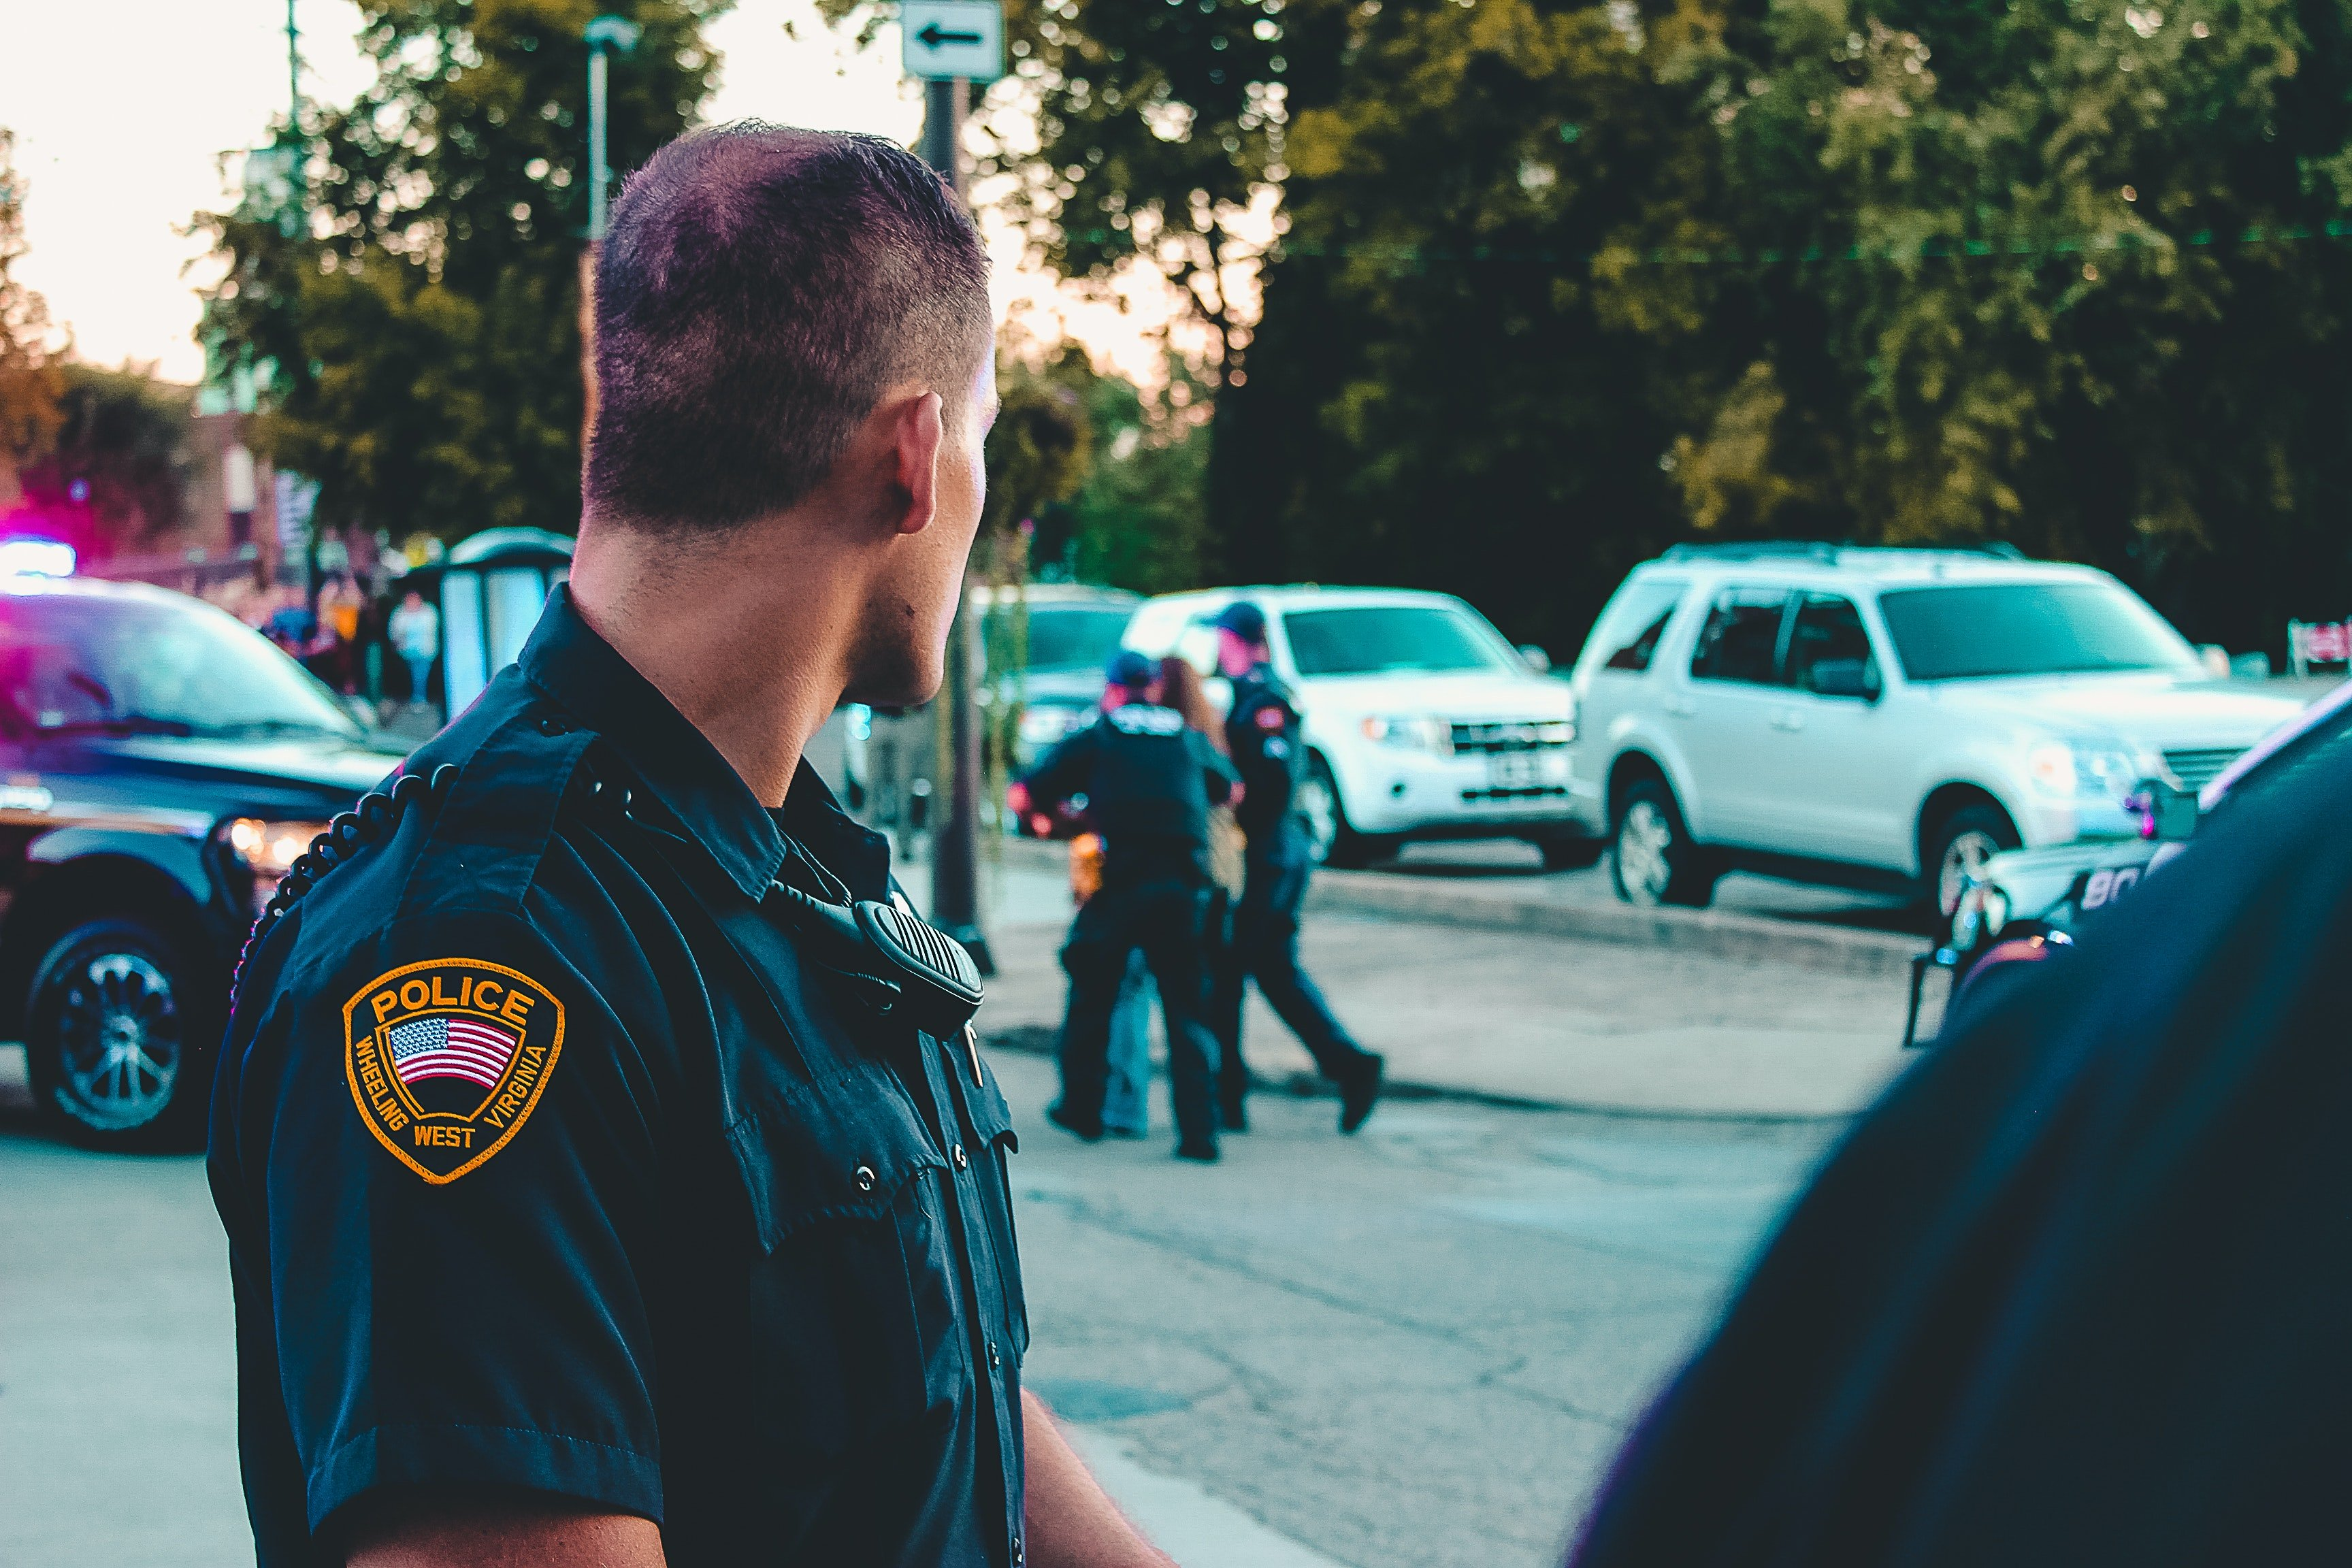 Police officer looking back toward a vehicle. | Photo: Pexels